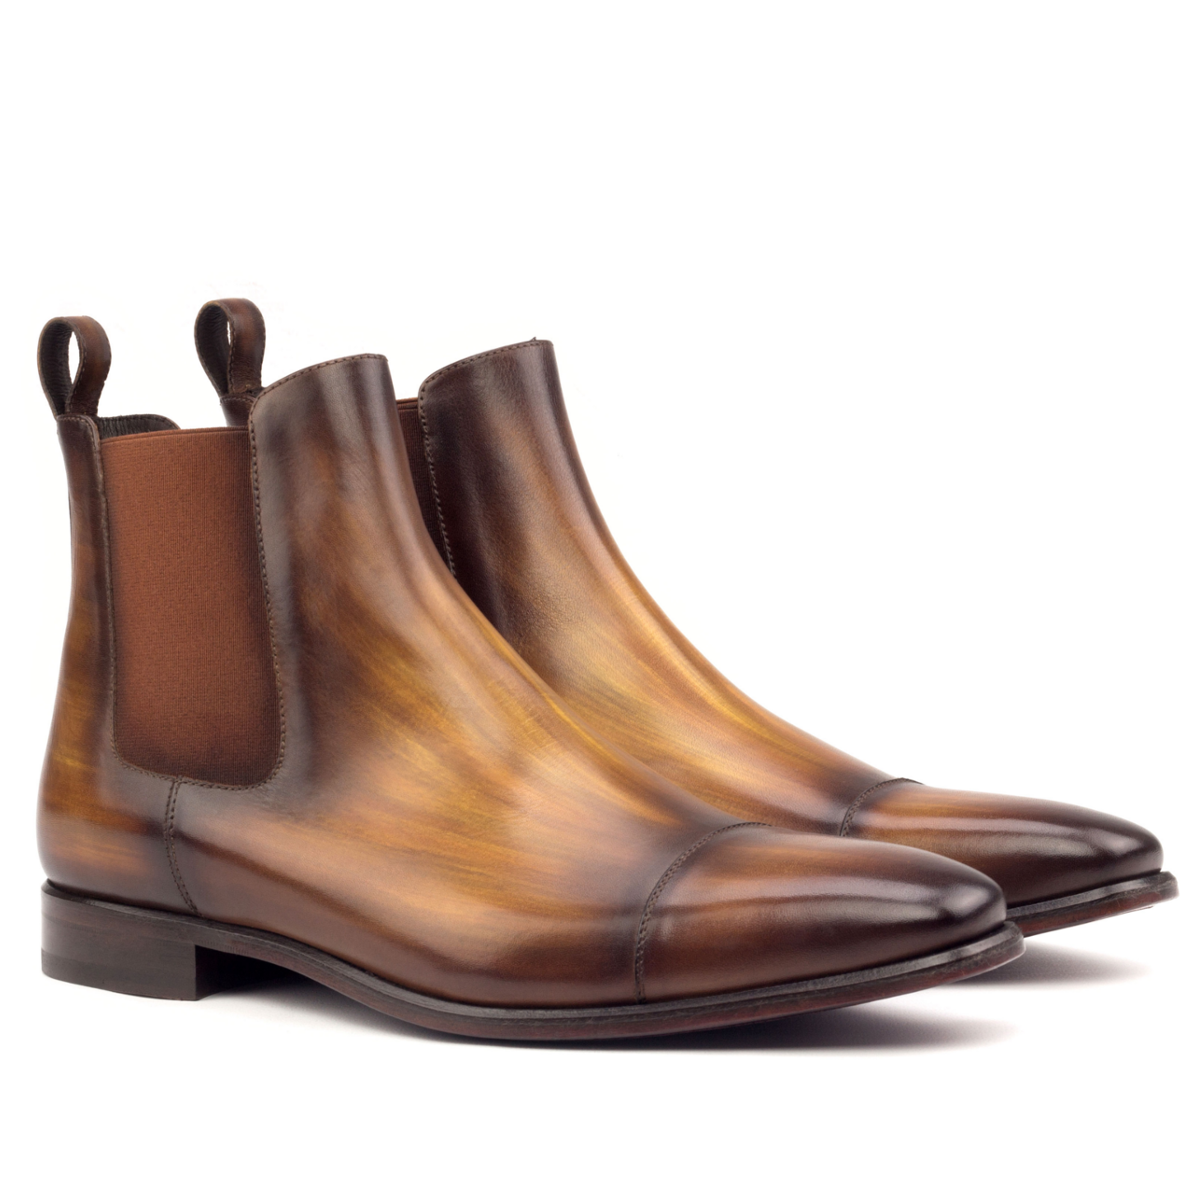 c02394d0f719c Chelsea boot brown crust patina - Cambrillón Bespoke Leather